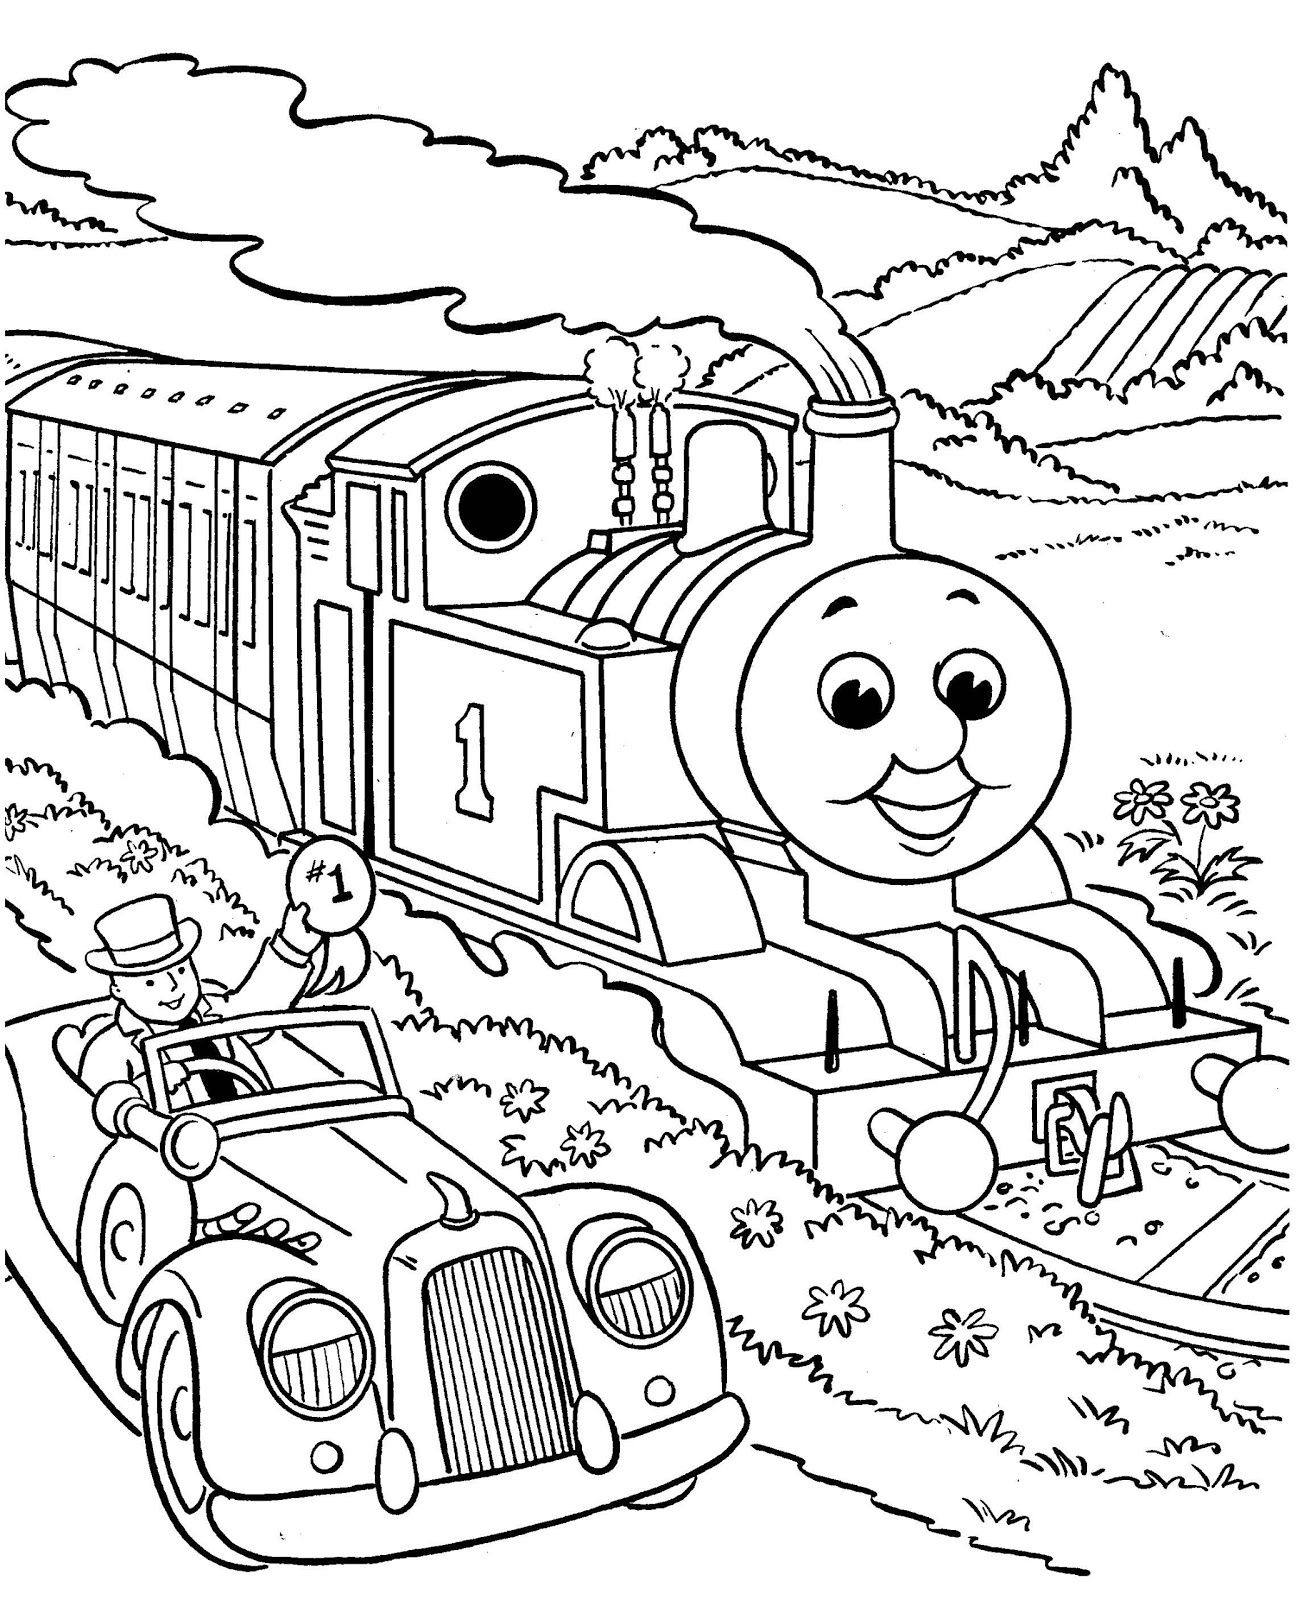 Mom S Daily Adventures Printable Coloring Pages